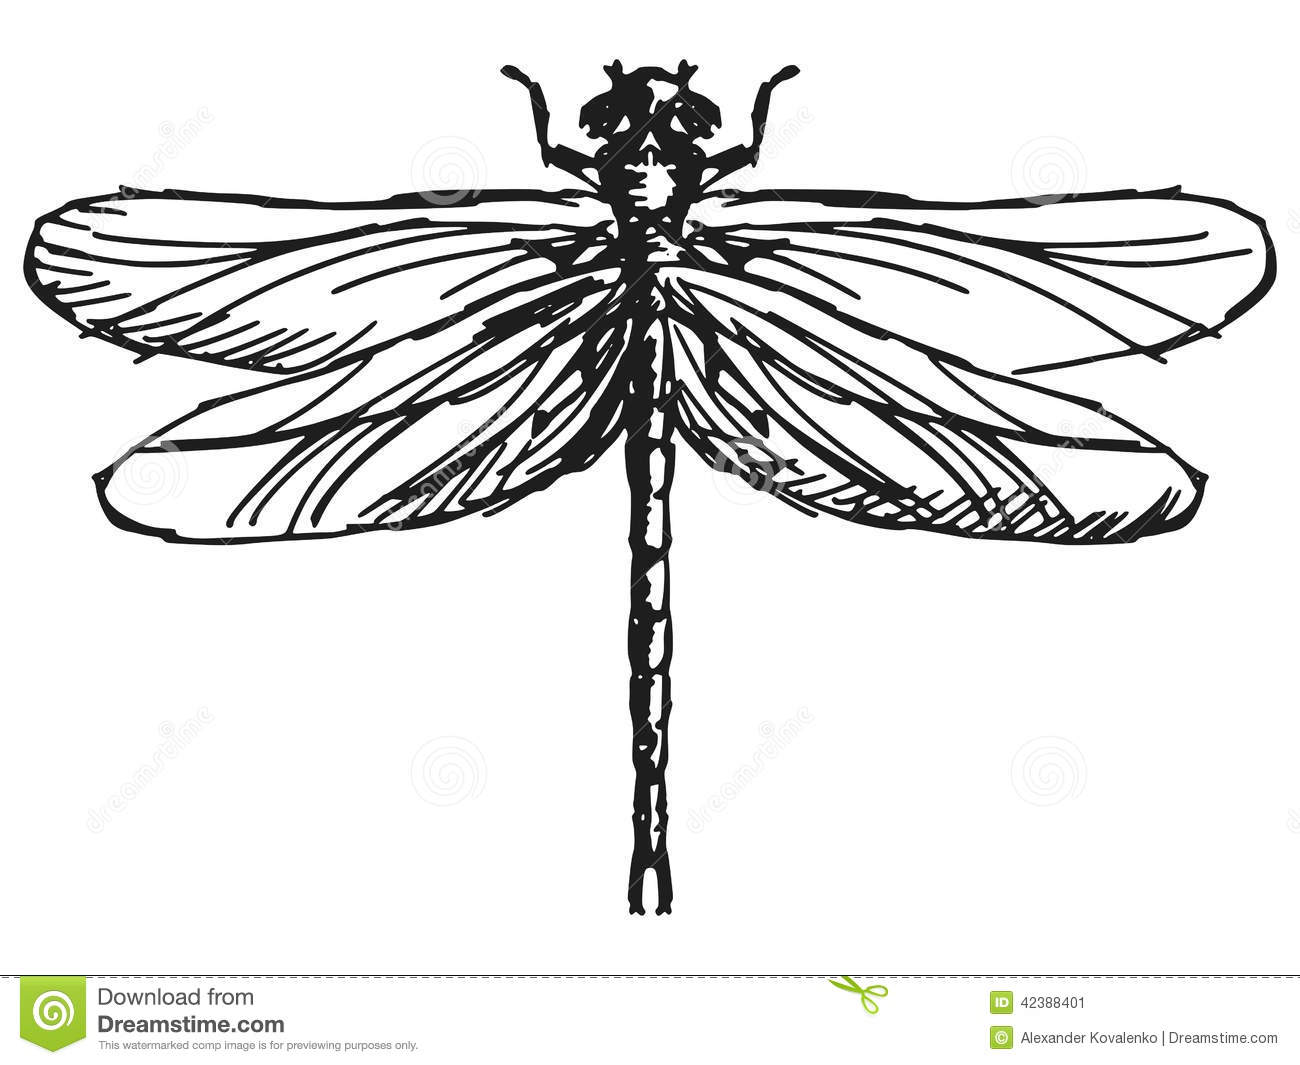 Hand drawn, sketch illustration of dragonfly.